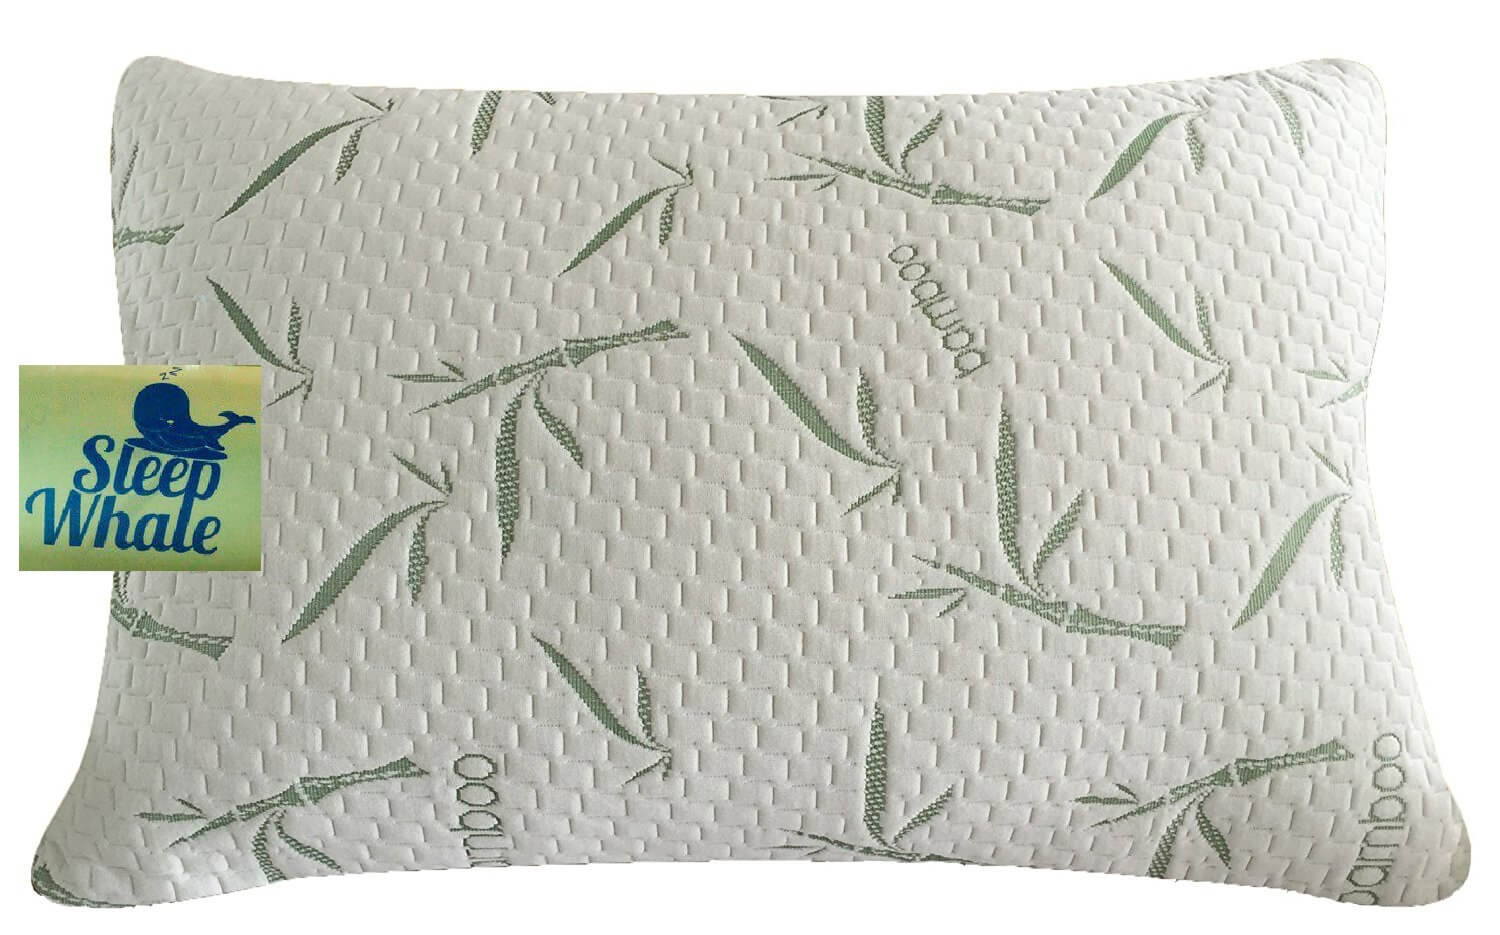 Premium Shredded Memory Foam Pillow by Sleep Whale